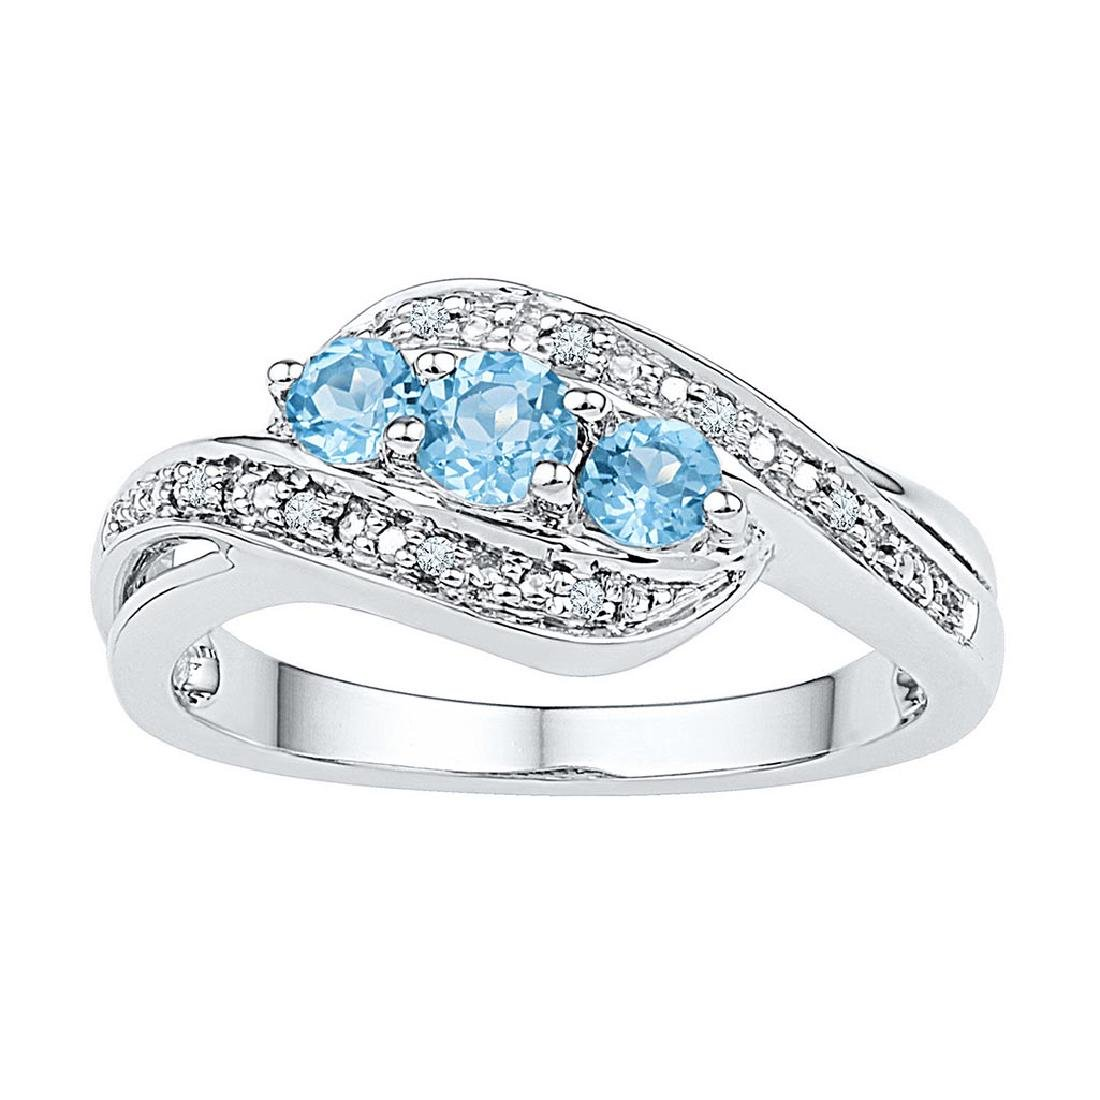 10kt White Gold Womens Round Lab-Created Blue Topaz 3-s